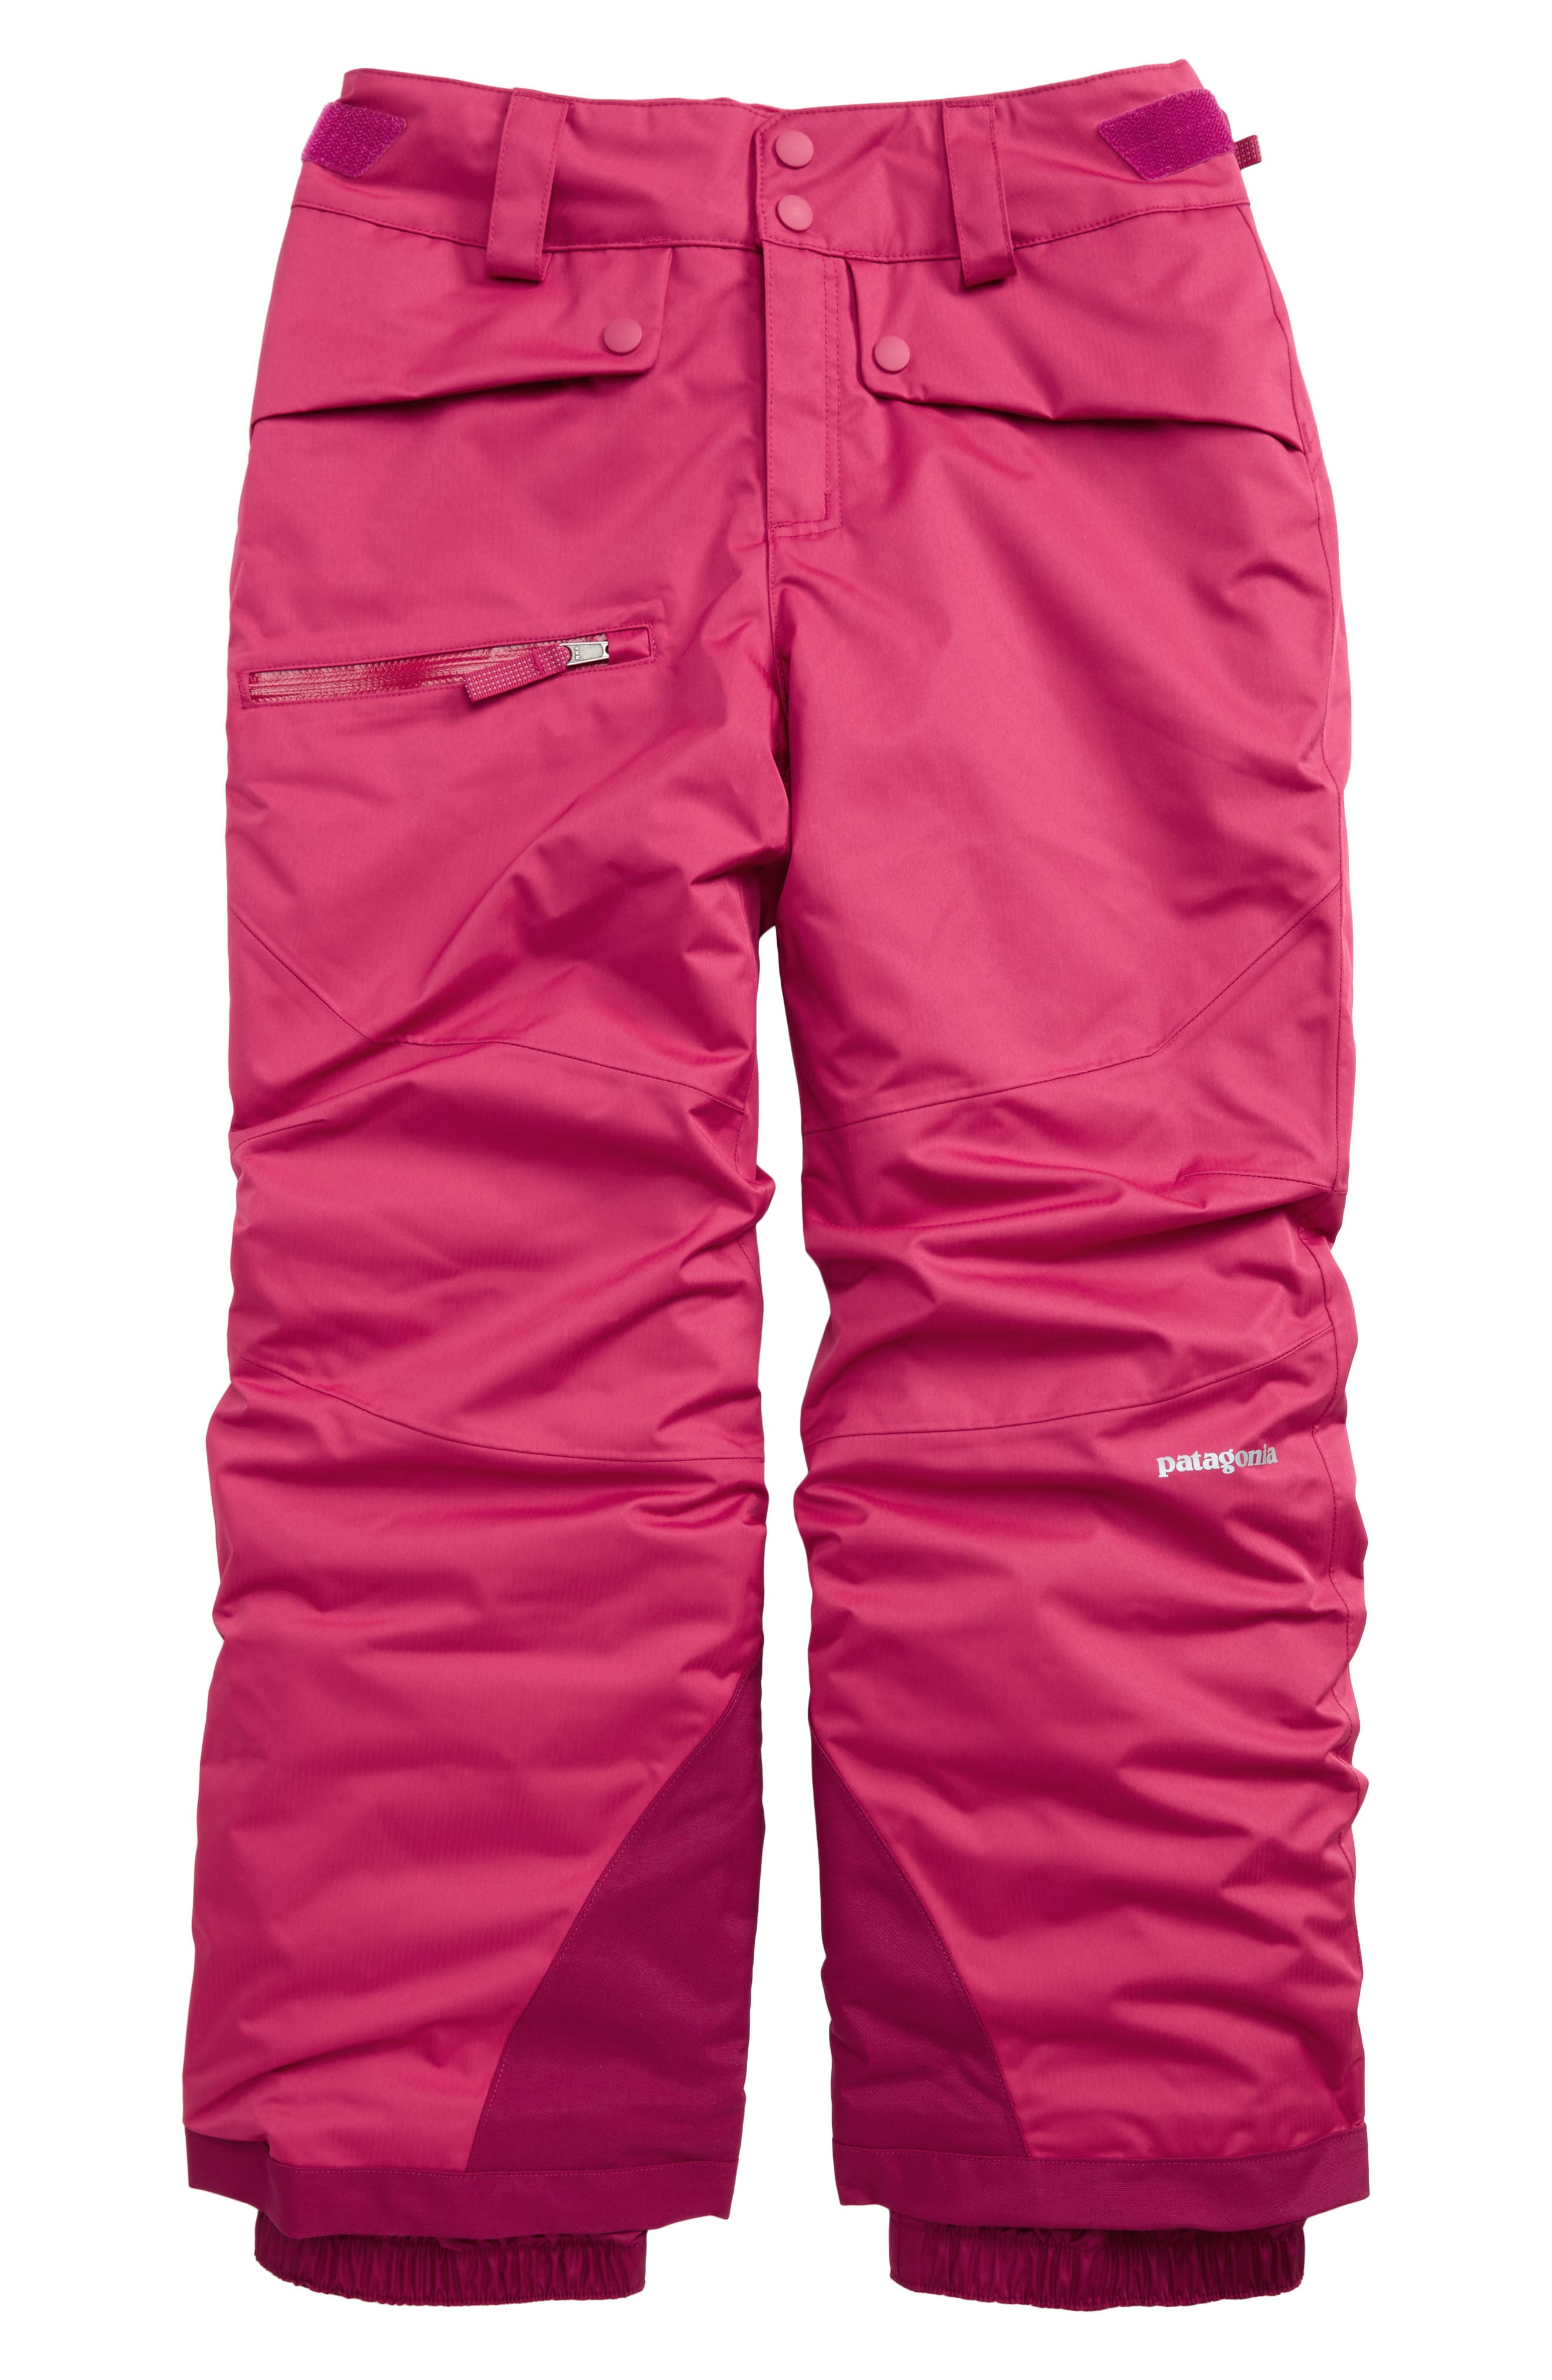 Main Image - Patagonia Snowbelle Insulated Snow Pants (Little Girls & Big Girls)